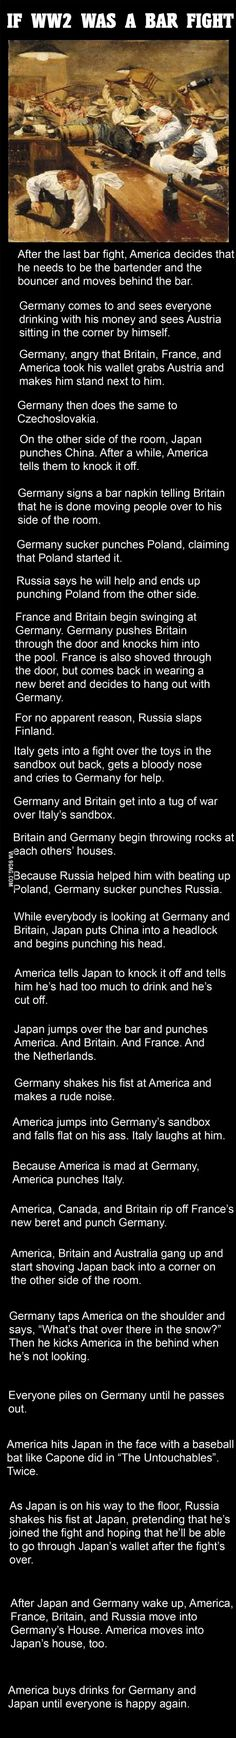 If World War 2 Was A Bar Fight..